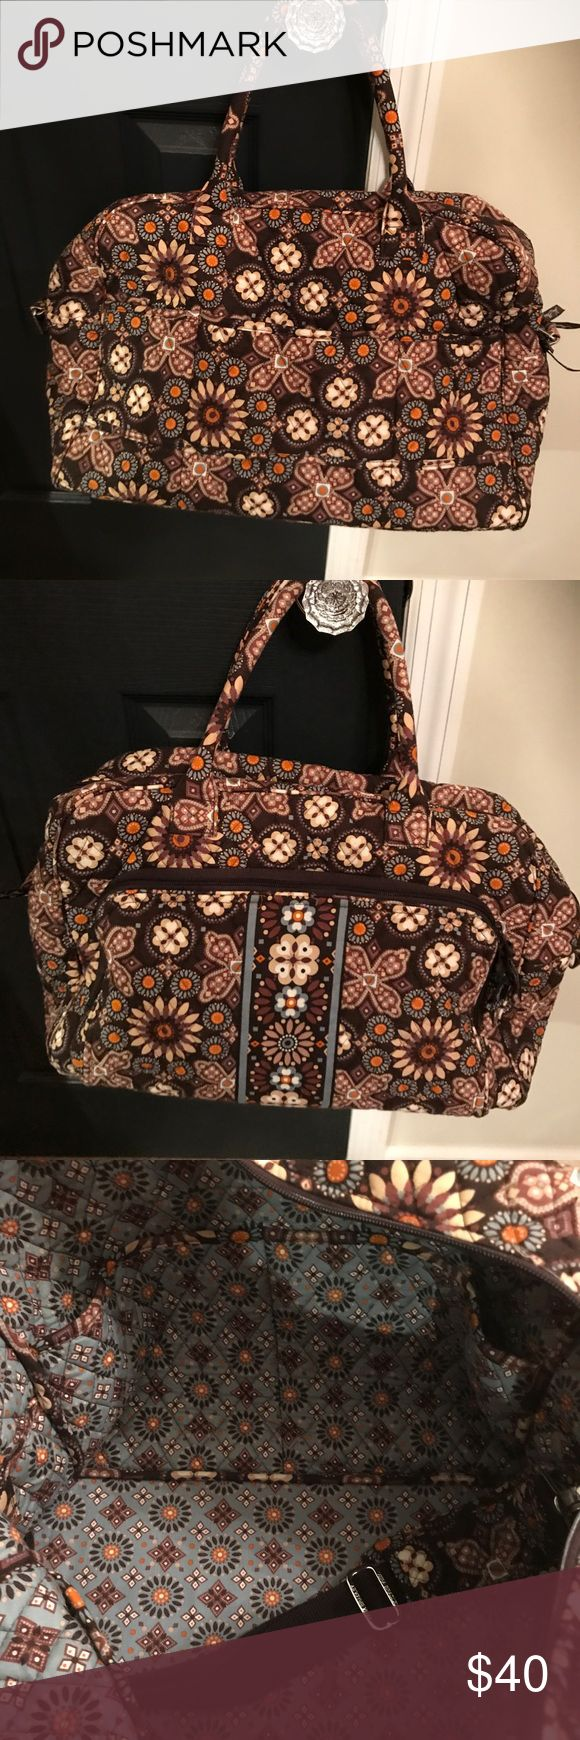 Vera Bradley Weekender Bag Authentic Vera Bradley Weekender Bag, pockets inside and strap nice size. Used but in great condition. No stains or rips Vera Bradley Bags Travel Bags